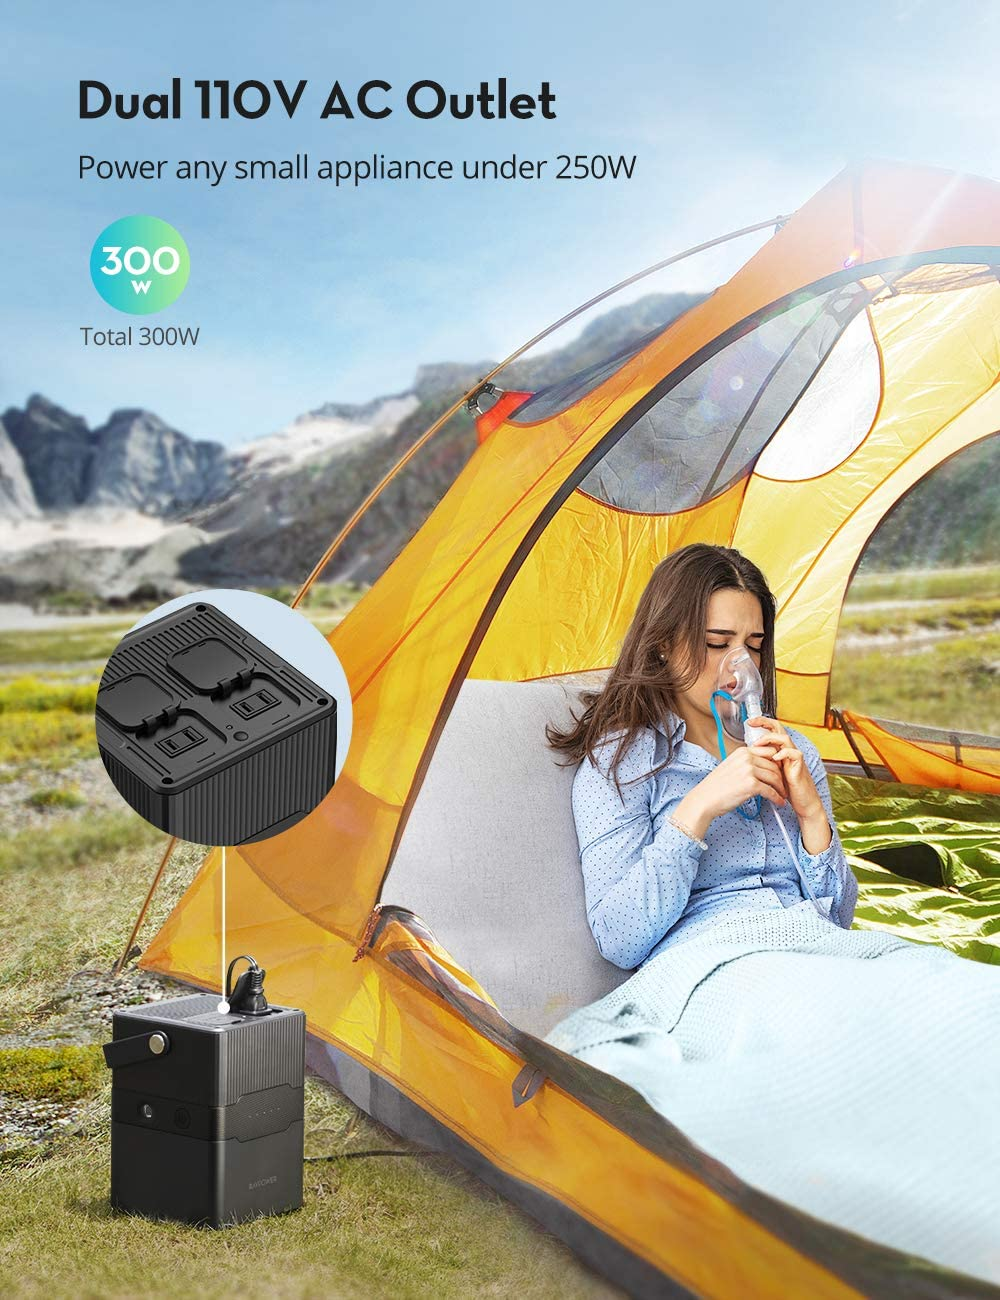 Portable Power Station RAVPower 252.7Wh 70200mAh Solar Generator,Dual 110V 300W Pure Sine Wave AC Outlet,60W PD and 120W DC Port Backup Lithium Battery for Outdoors Camping Travel Hunting Emergency